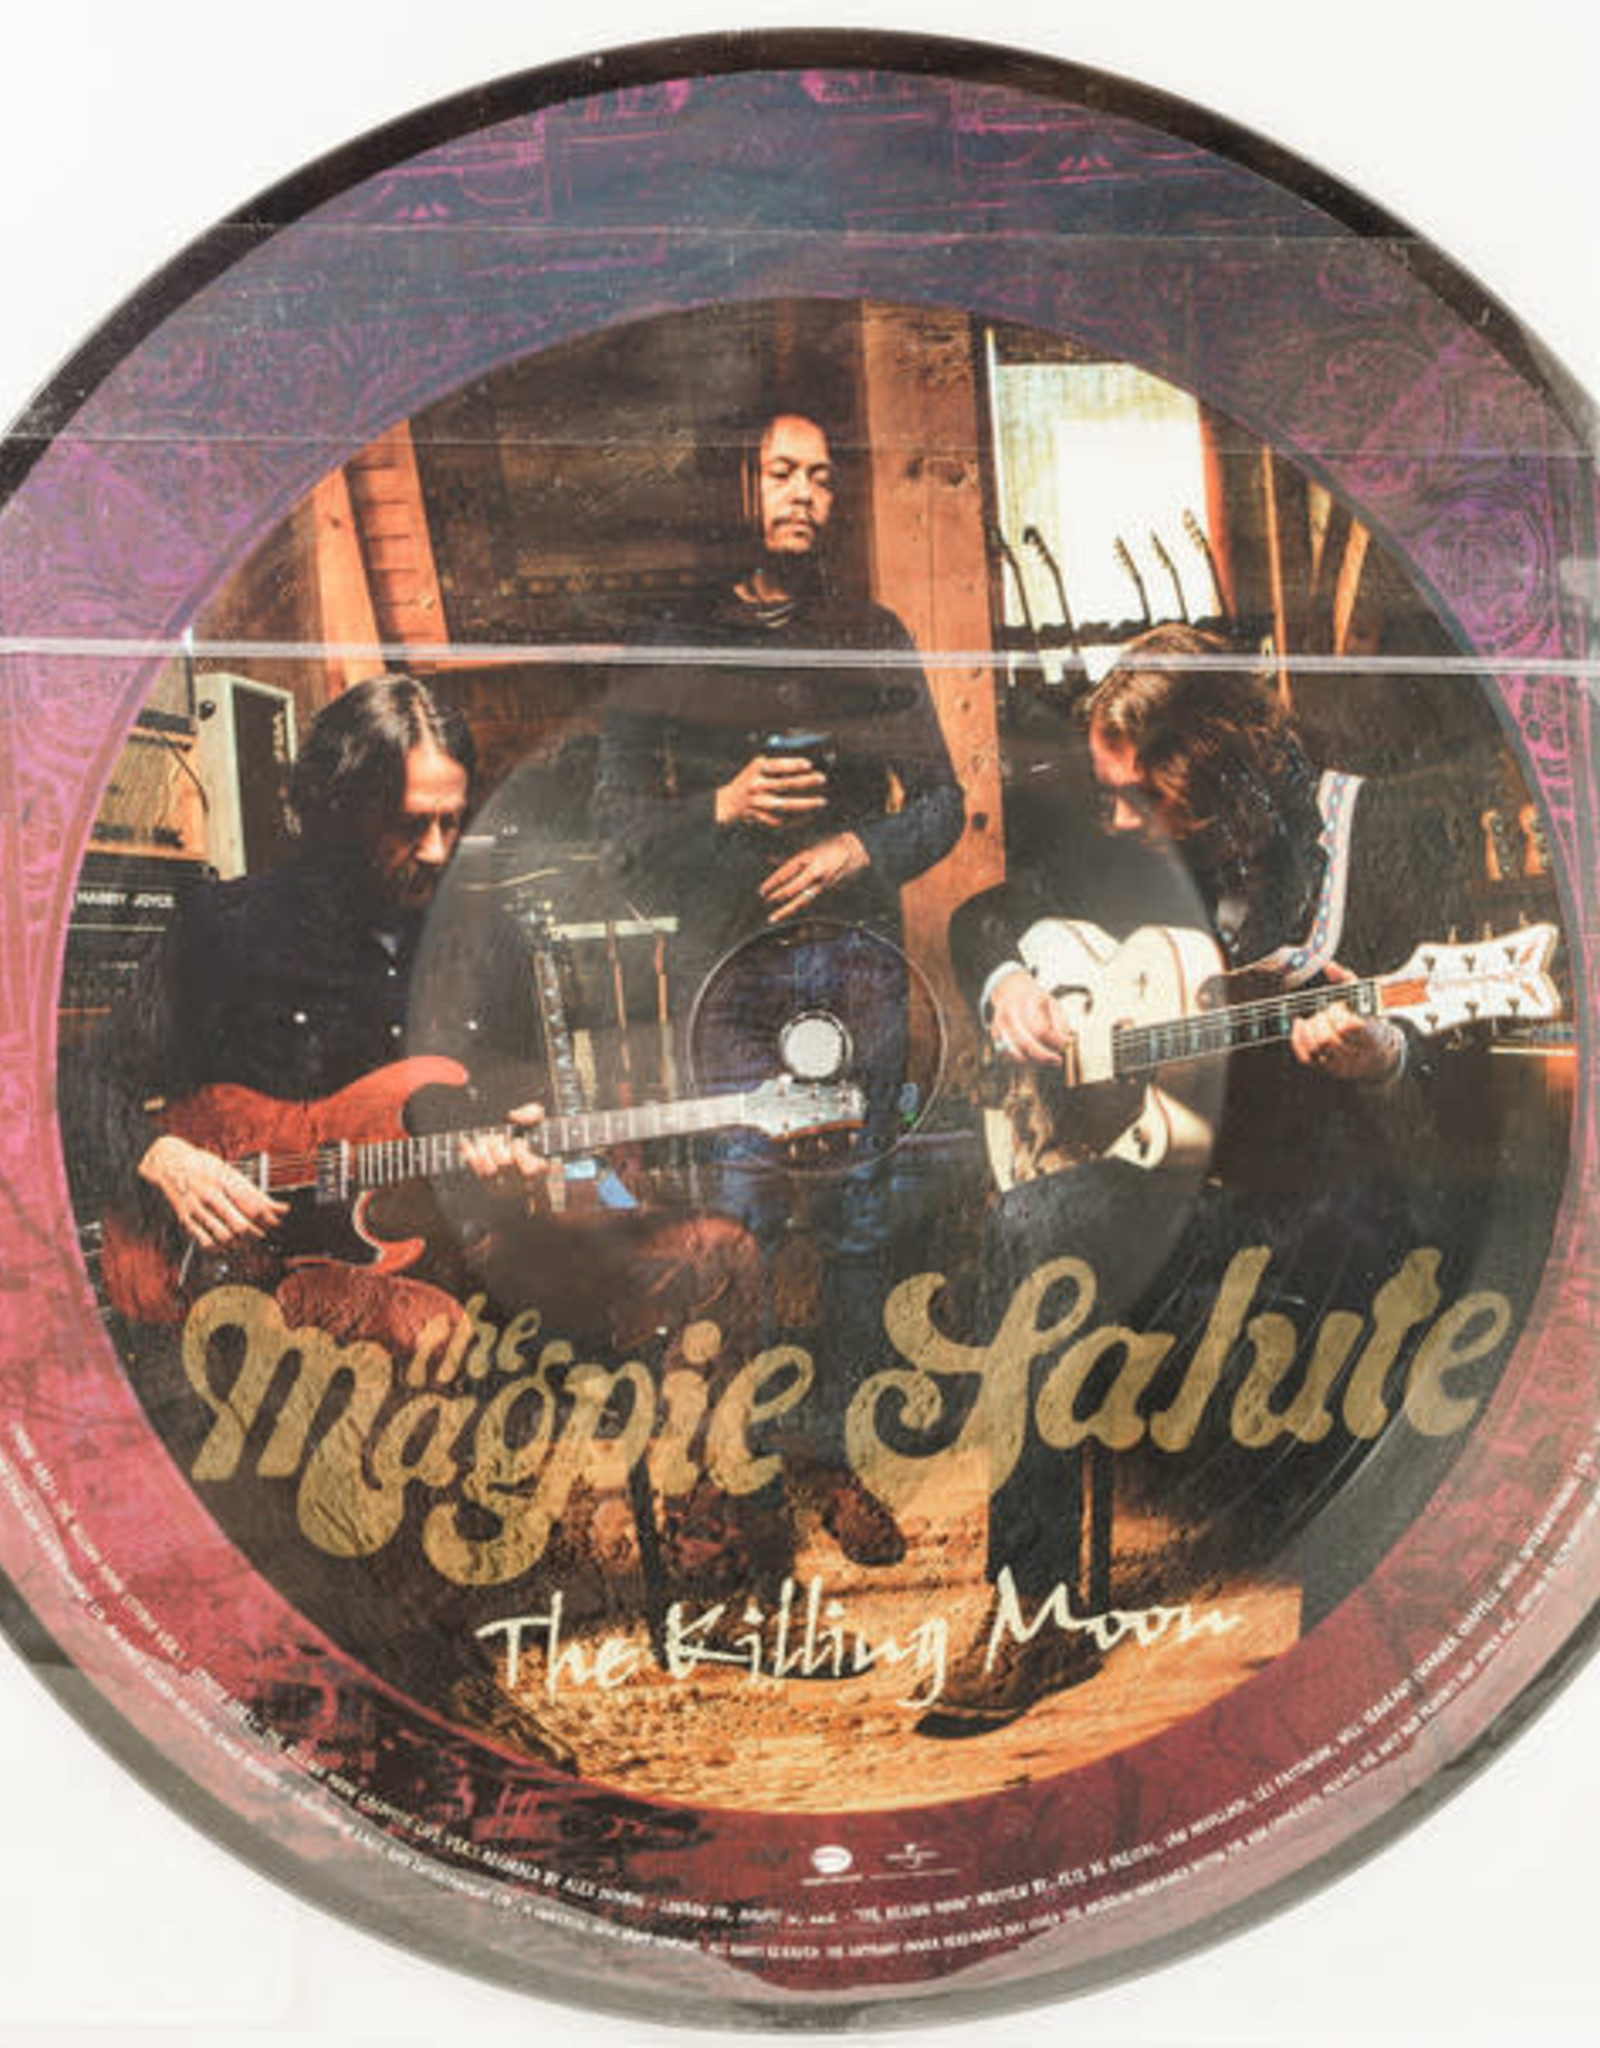 Magpie Salute - Killing Moon (Limited 10 Inch Picture Disc)